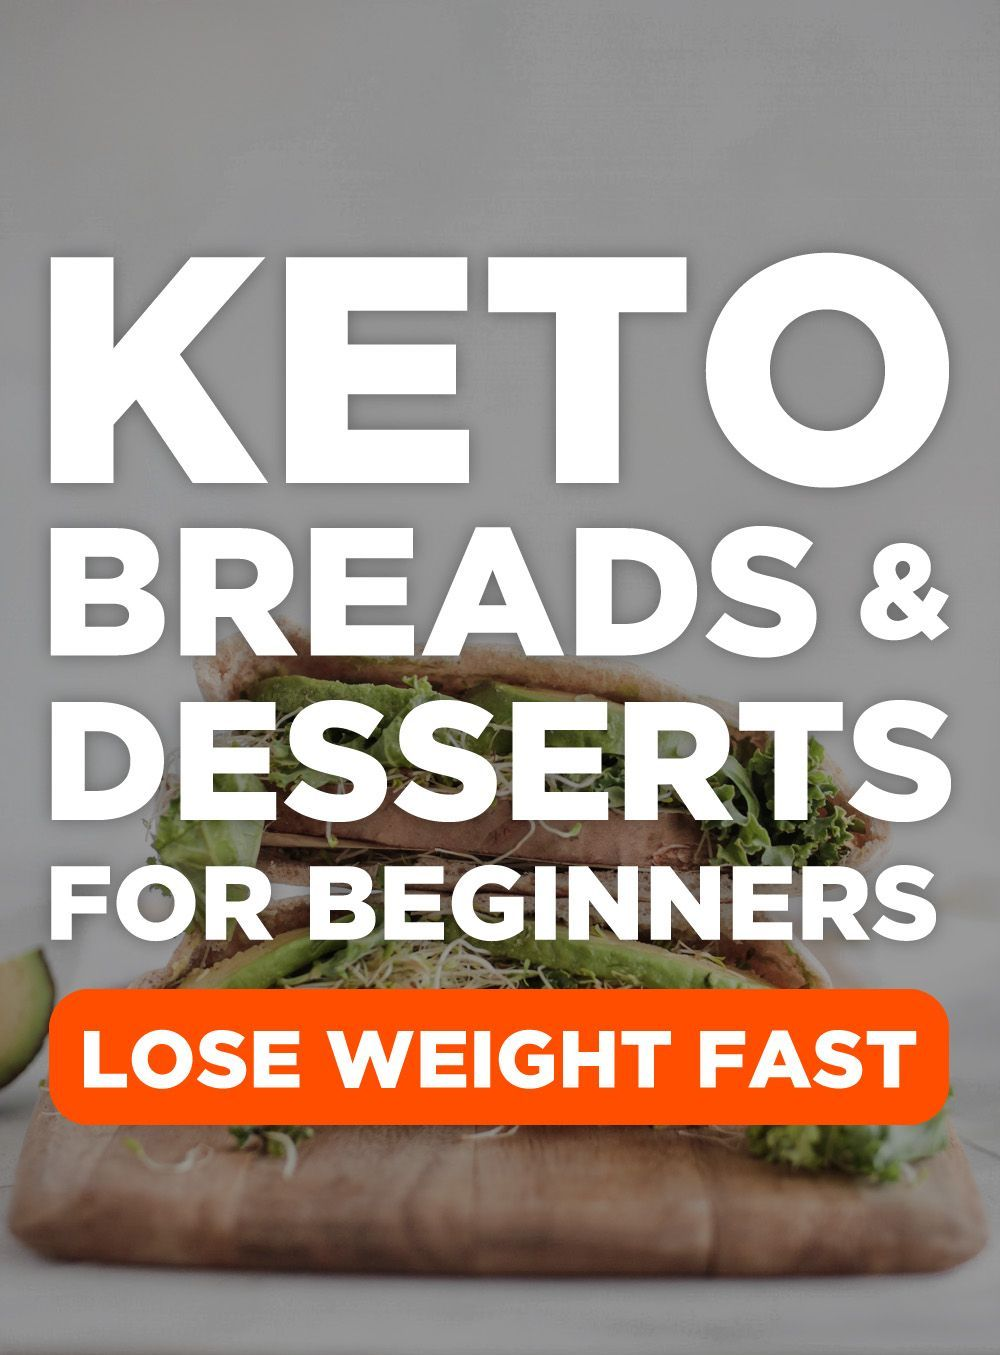 the best diet to lose weight fast, 	keto diet meaning,  keto dessert recipes #myfitnesspalrecipes the best diet to lose weight fast, 	keto diet meaning, 	beginner yoga for weight loss,  how to lean out fast, 	low carb eggroll, 	keto adaption,  modified paleo diet, 	myfitnesspal recipes, 	recipes foods,  easy diet food, 	low carb diet easy, 	1 week weight loss,  low carb meat recipes, 	diet to lose belly fat, 	keto diet how to,  is keto diet bad, 	fit weight, 	keto diet easy recipes,  keto diet s #myfitnesspalrecipes